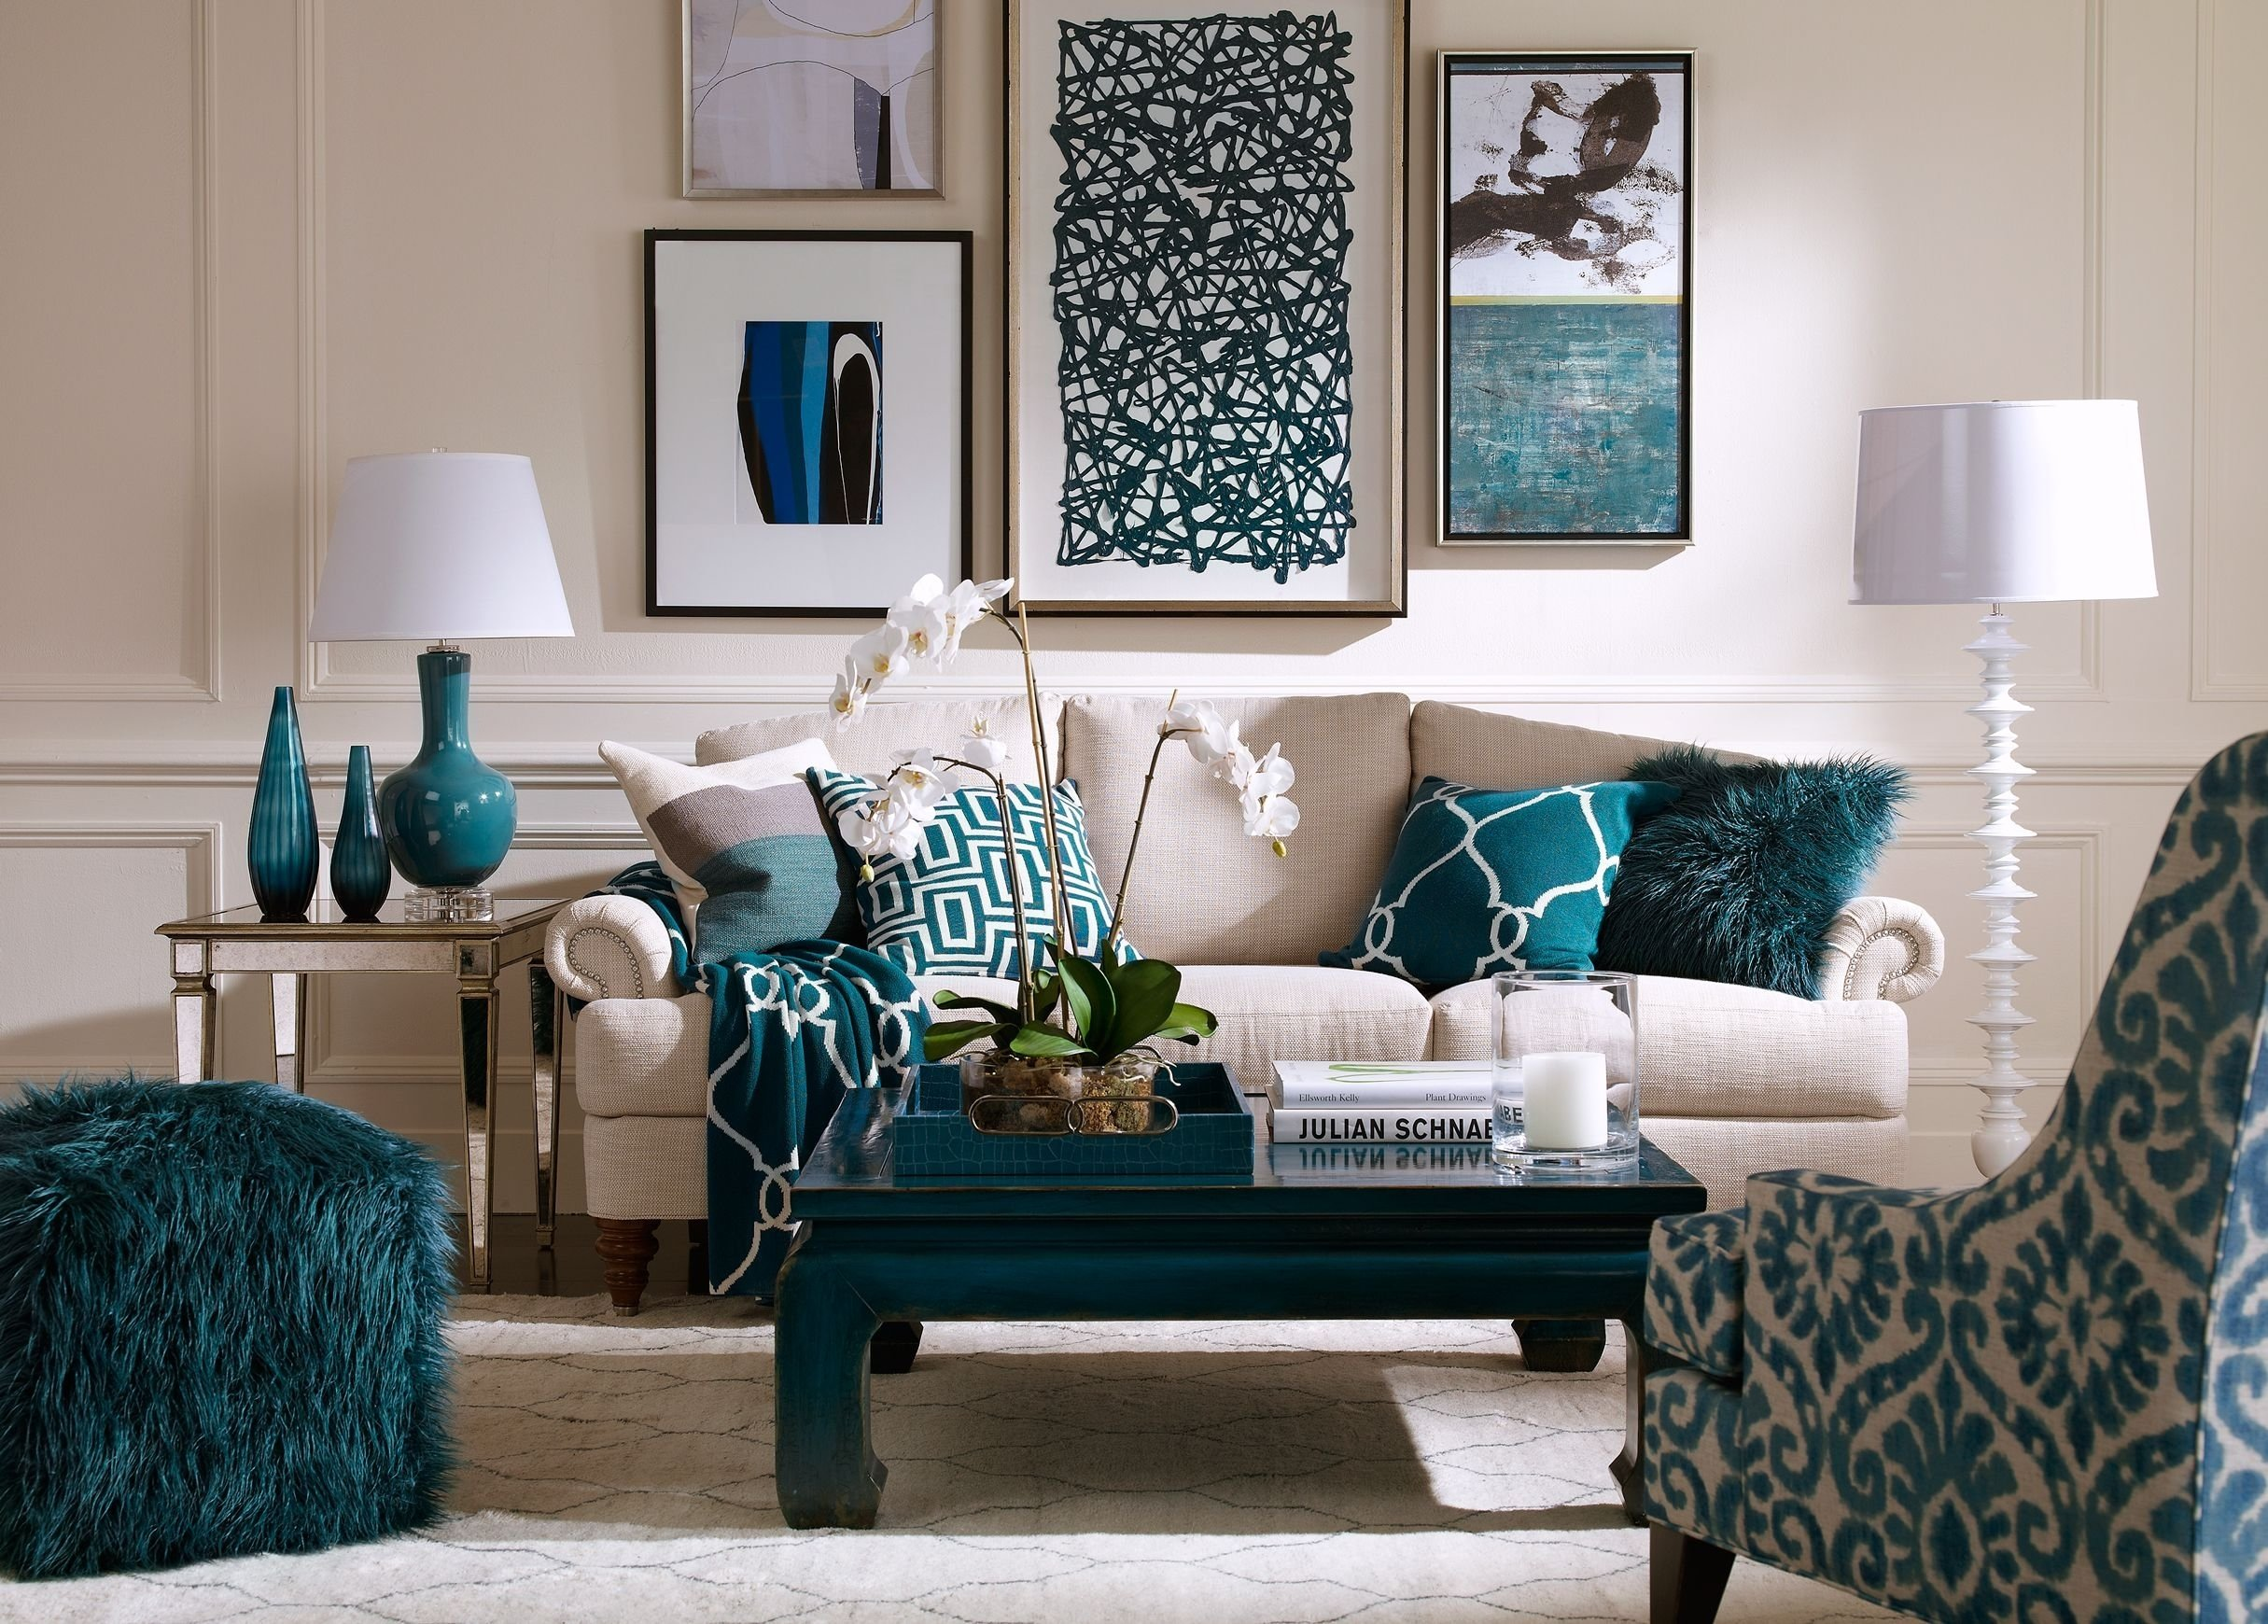 10 Attractive Ideas For Living Room Decor 15 best images about turquoise room decorations living rooms 4 2020